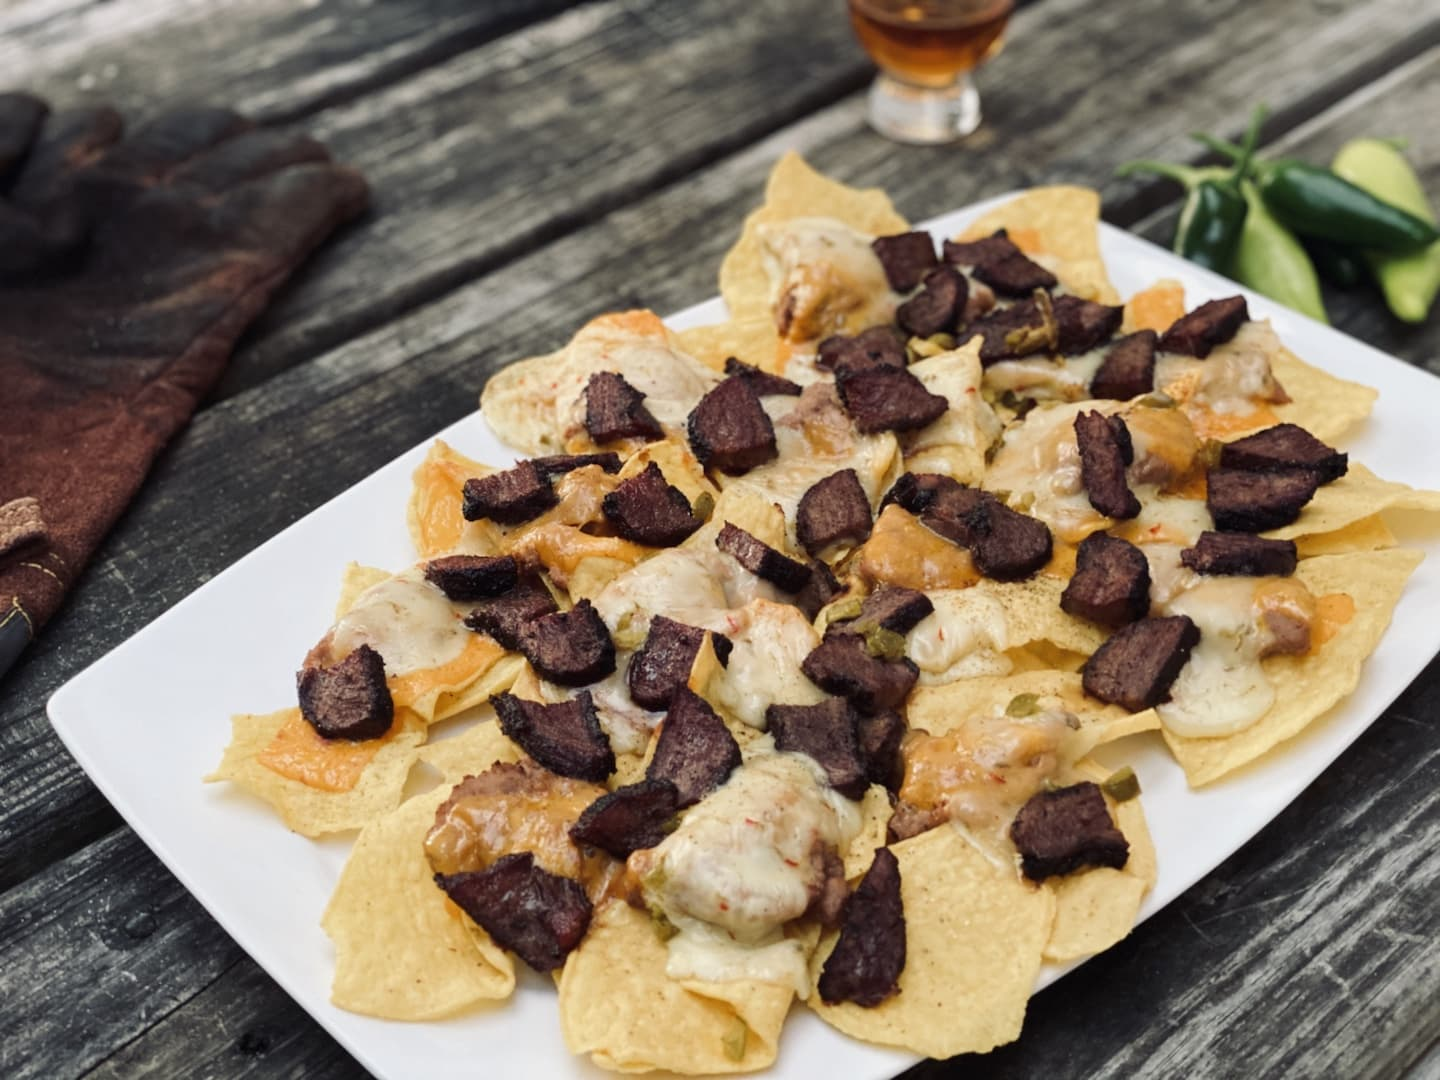 Smoked Nachos plated